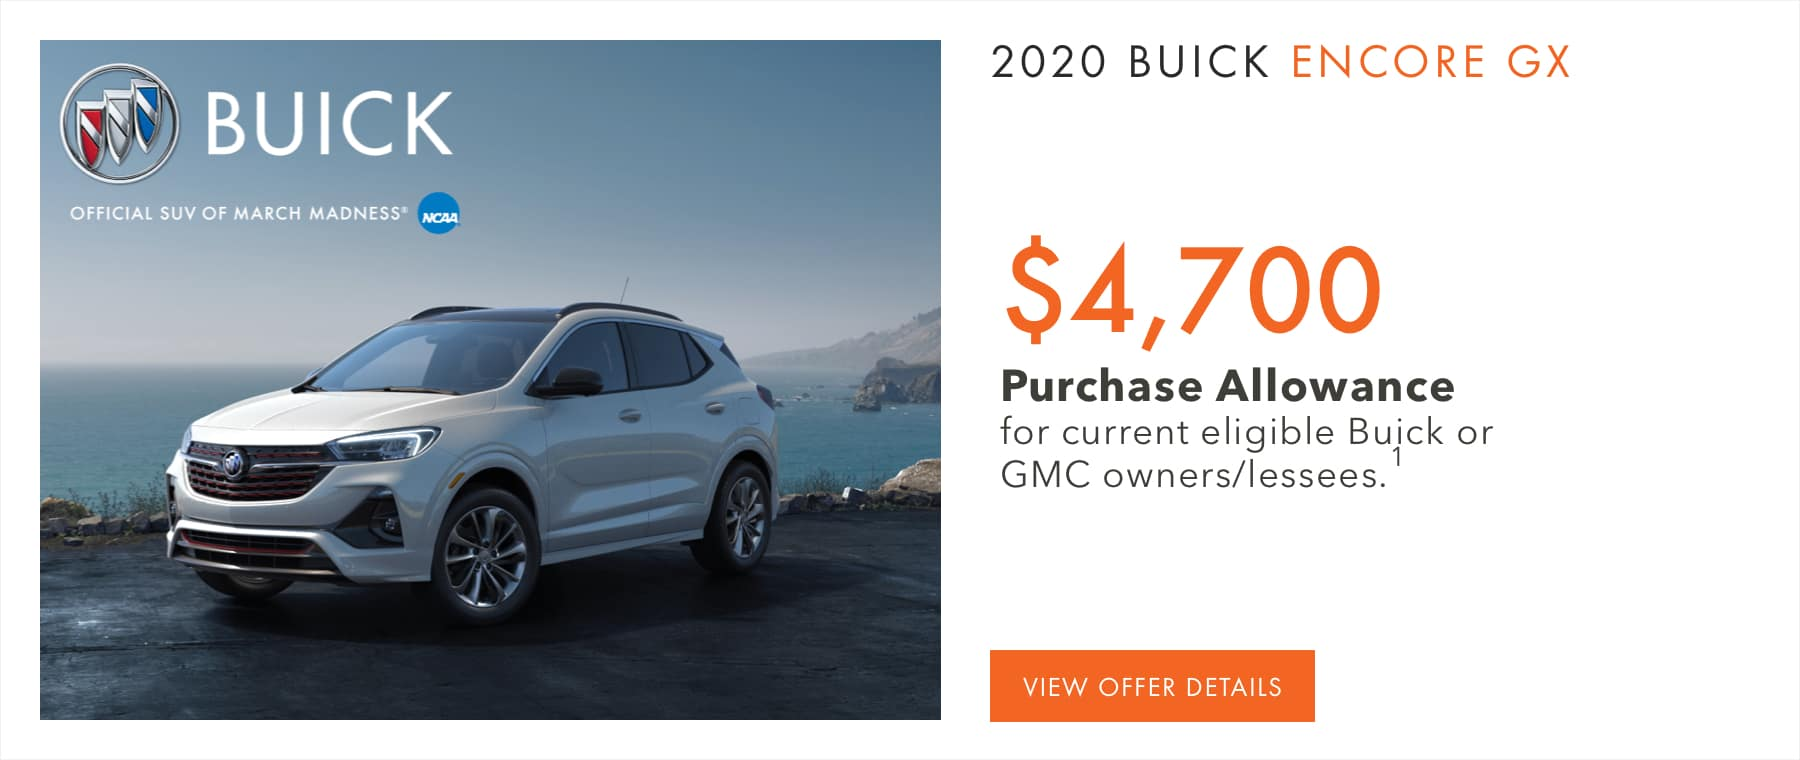 $4,700 Purchase Allowance for current eligible Buick or GMC owners/lessees.1